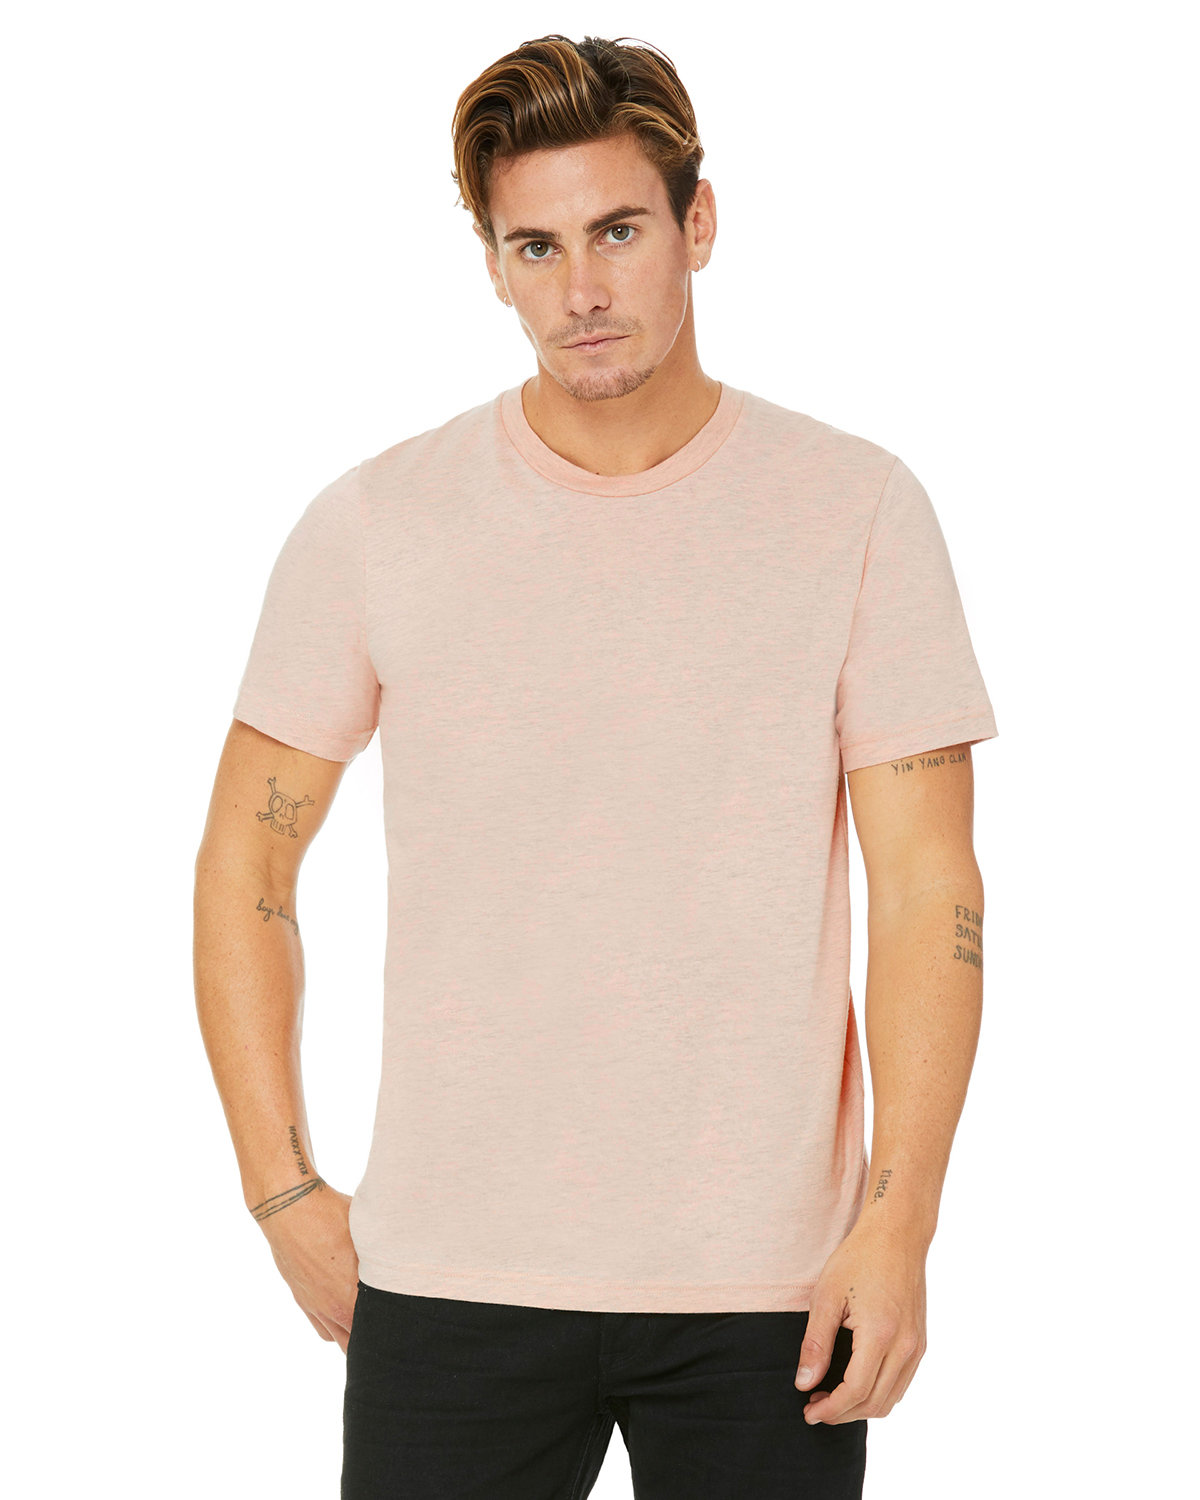 Bella + Canvas Unisex Heather CVC T-Shirt HTHR PRISM PEACH